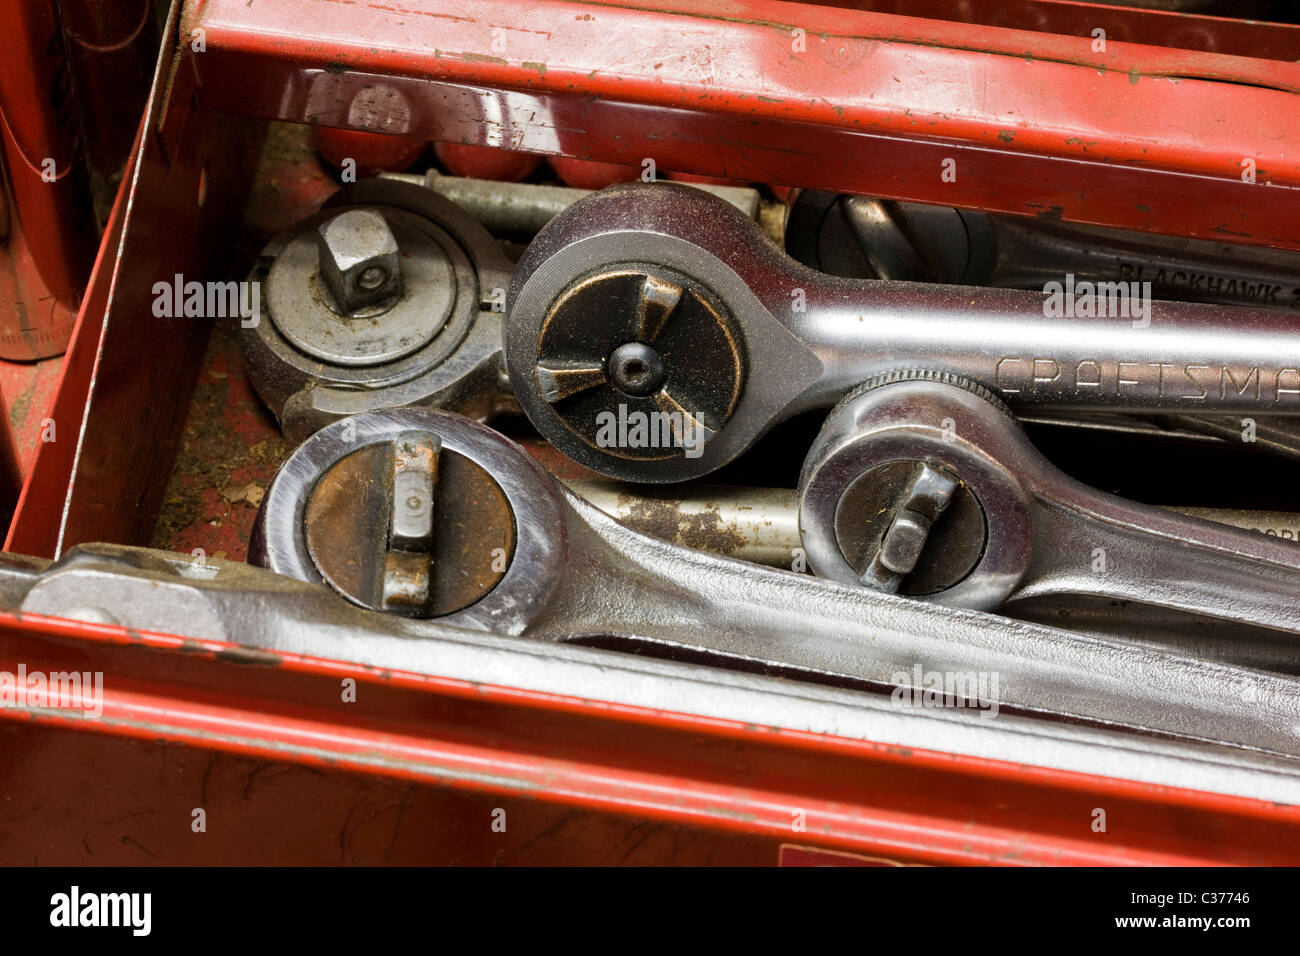 Automotive mechanic's tools in a tool chest - Stock Image